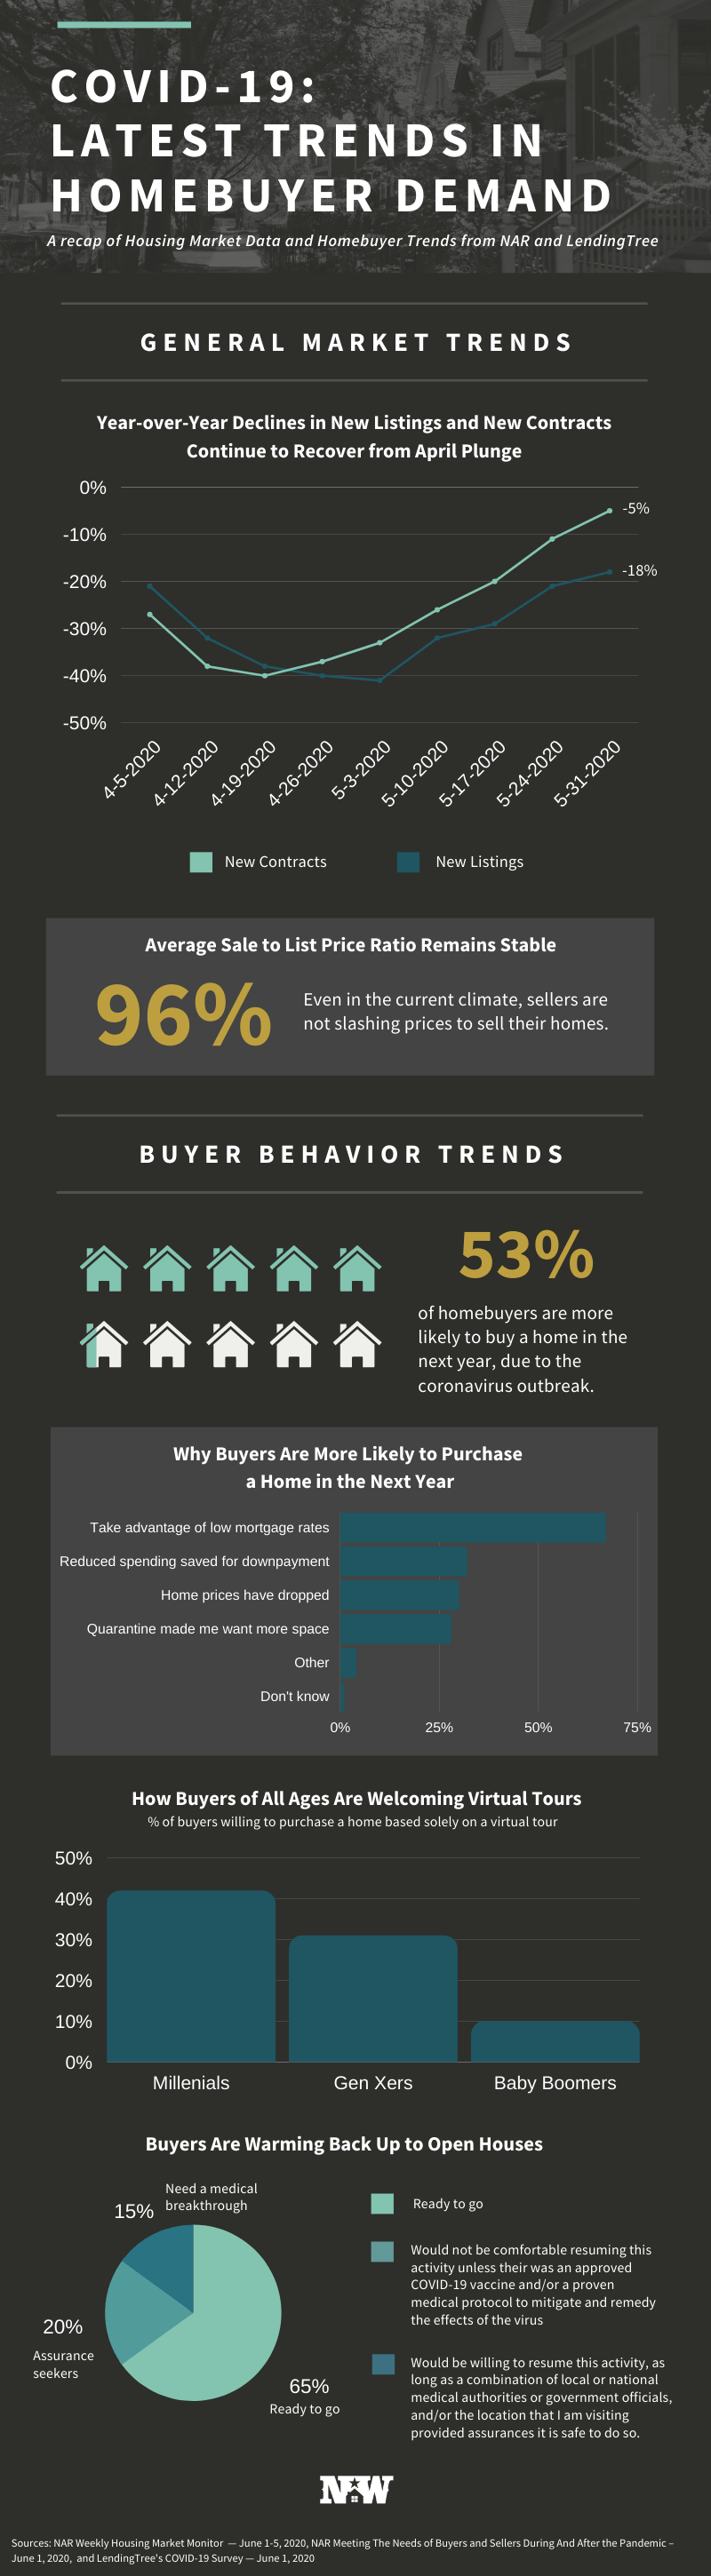 COVID-19: latest trends in homebuyer demand